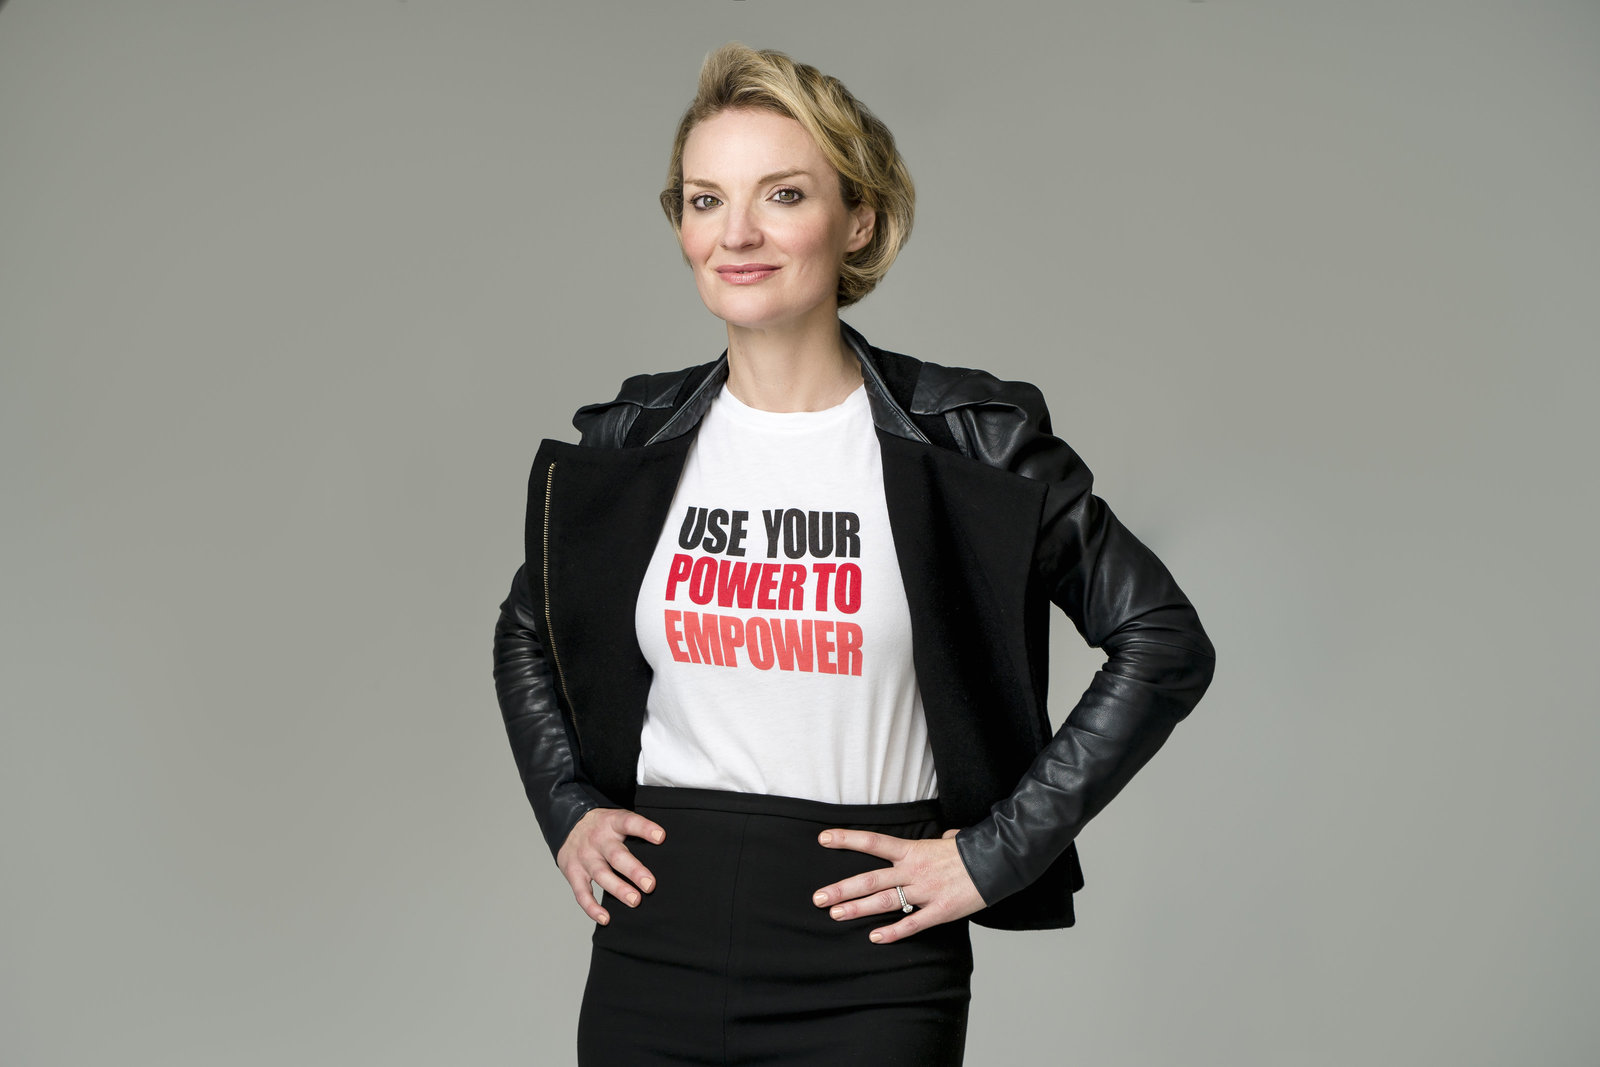 Elyse Nelson commissioned Adrienne Longo of Electric Love Studios to take a headshot portrait of her in an empowering tee shirt and black leather jacket.